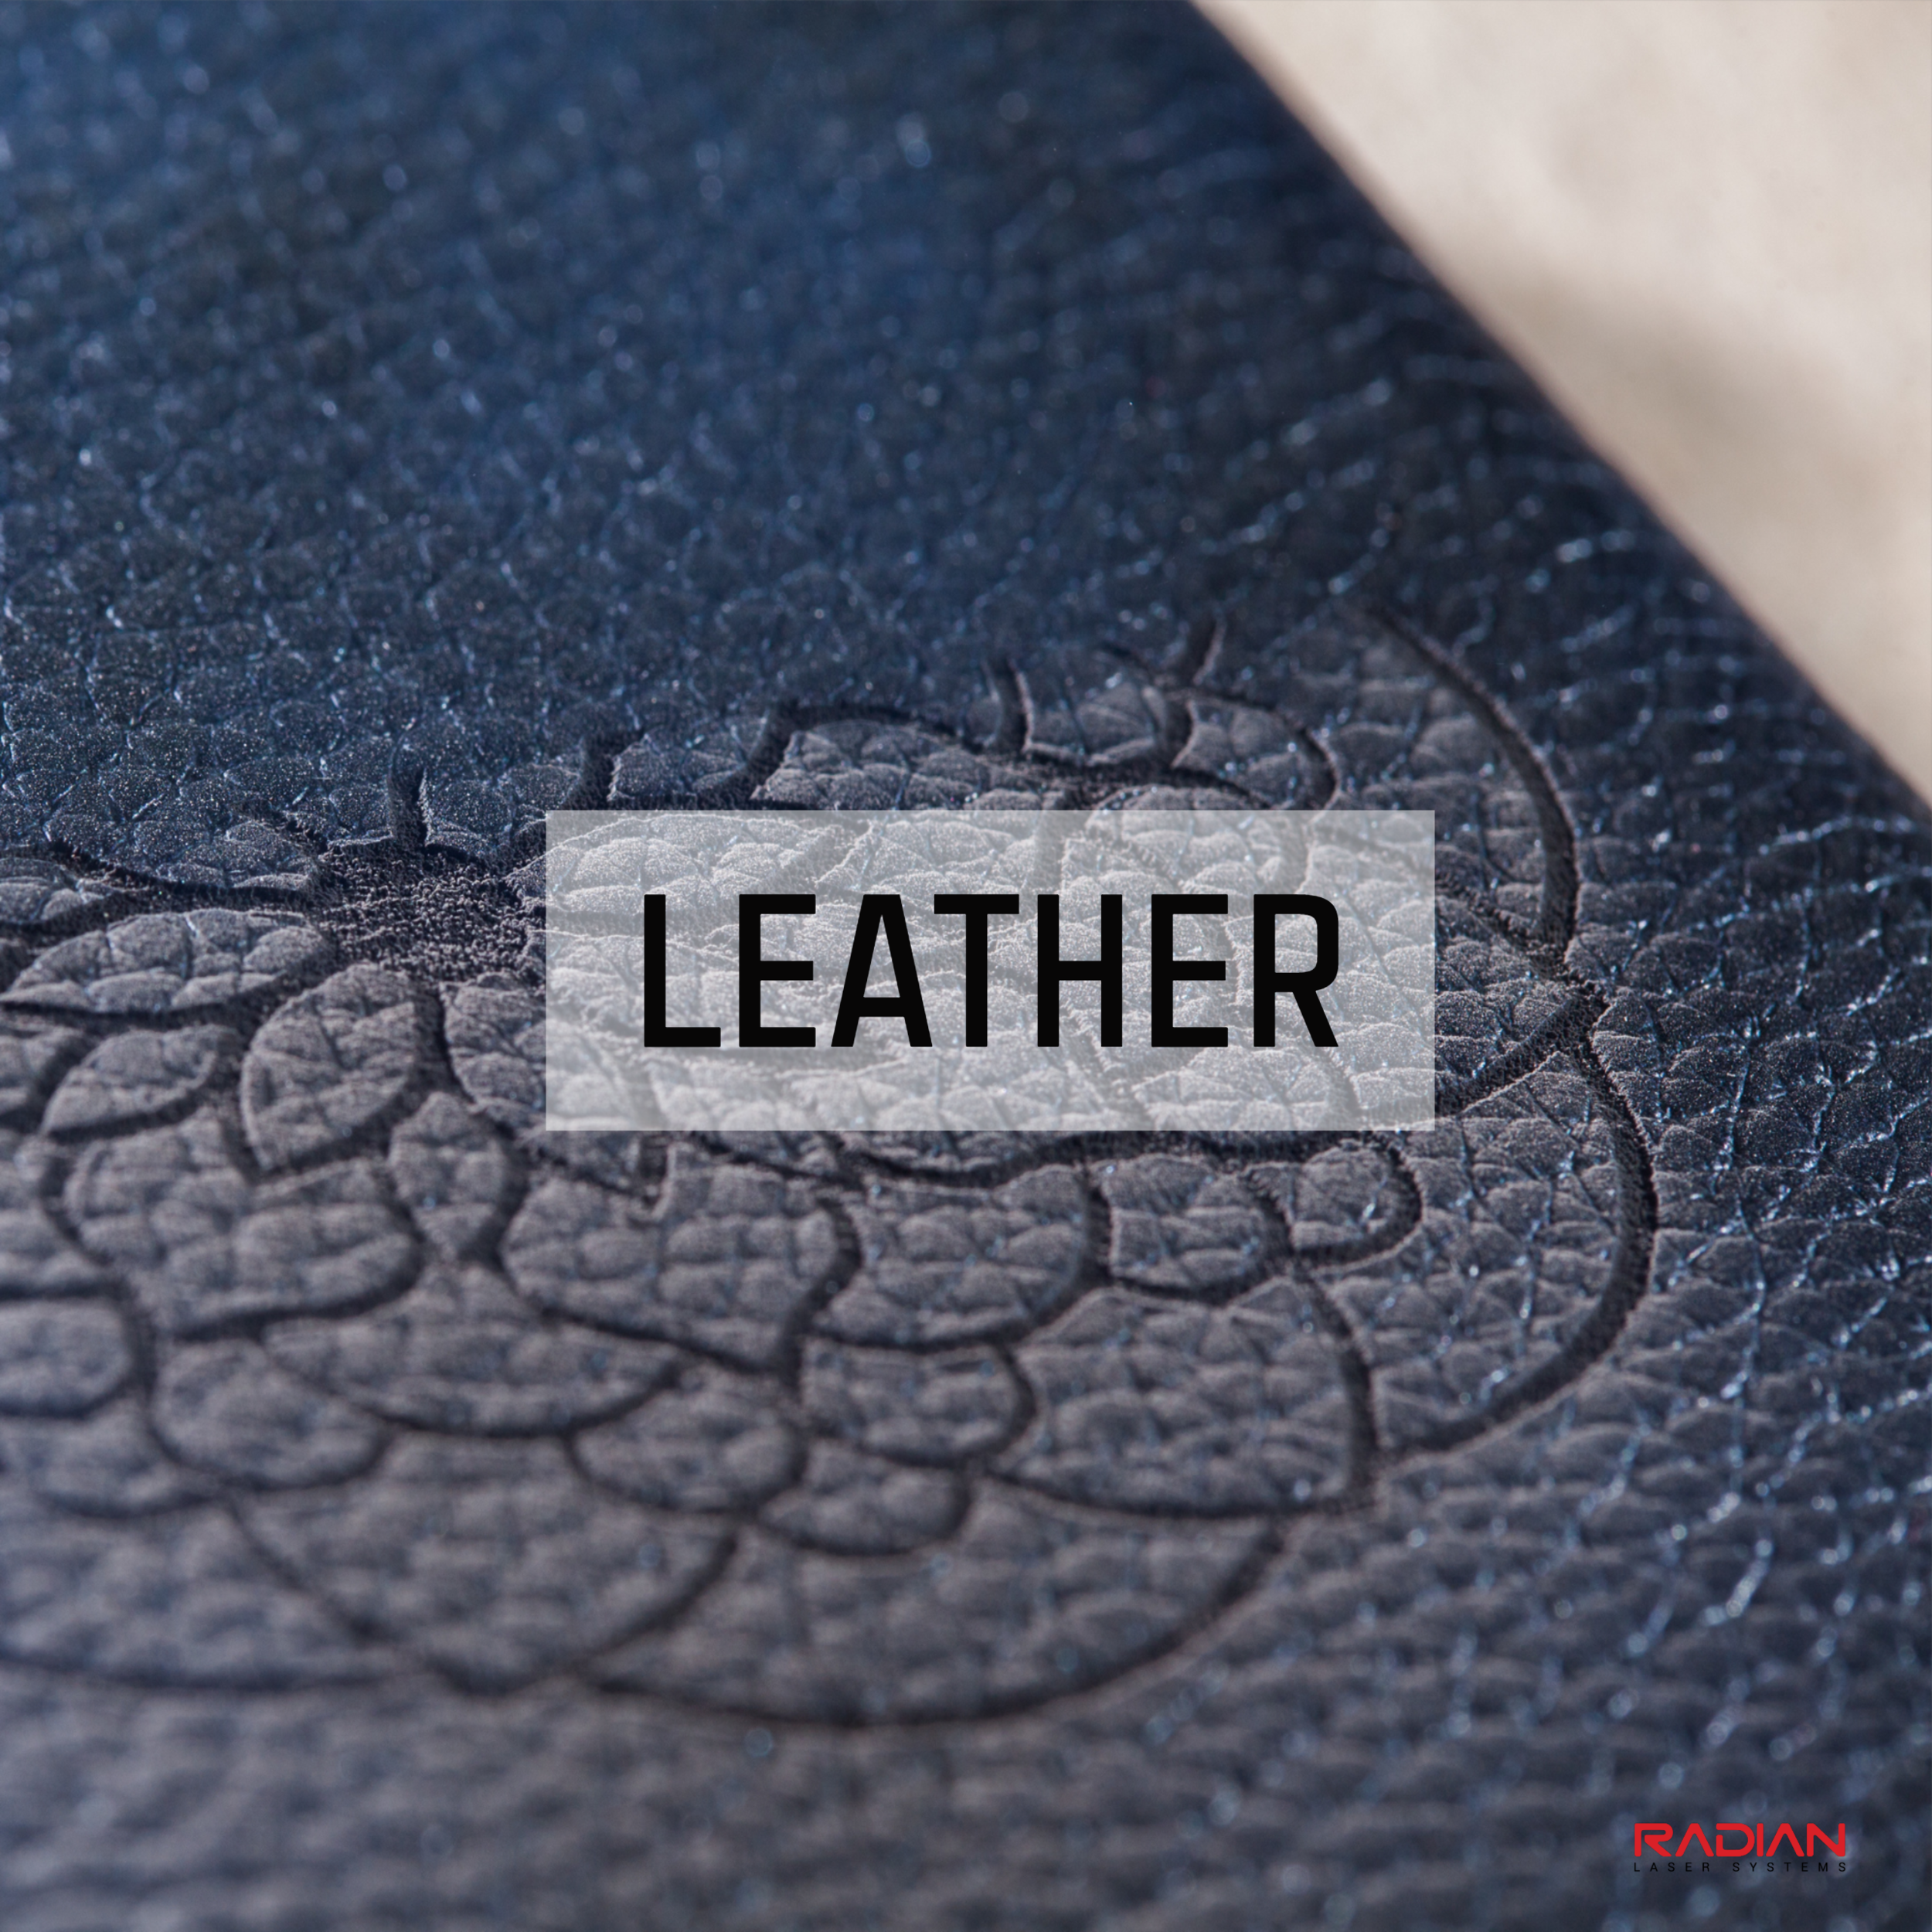 Marking Leather with a Laser